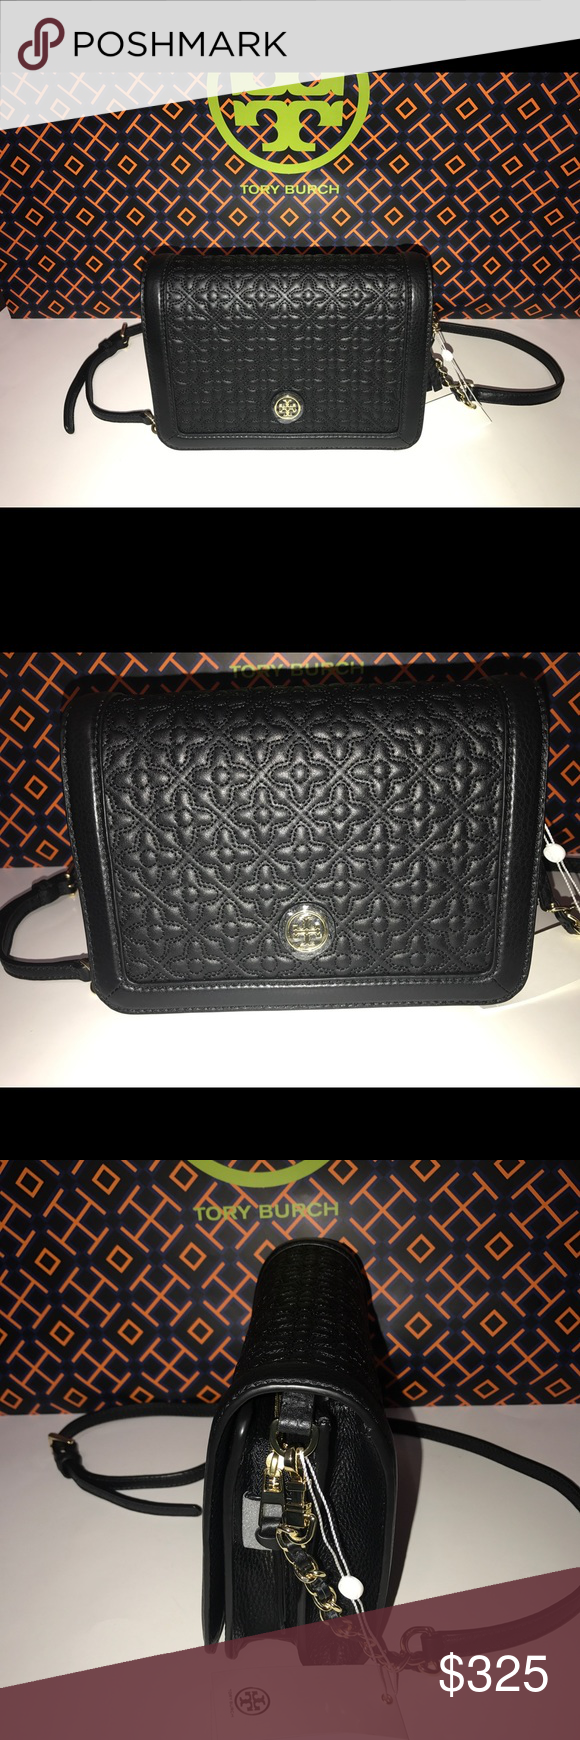 1c19b9590dc New Tag Tory Burch Bryant Quilted Combo Cross-bag Tory Burch Bryant Quilted  Crossbody